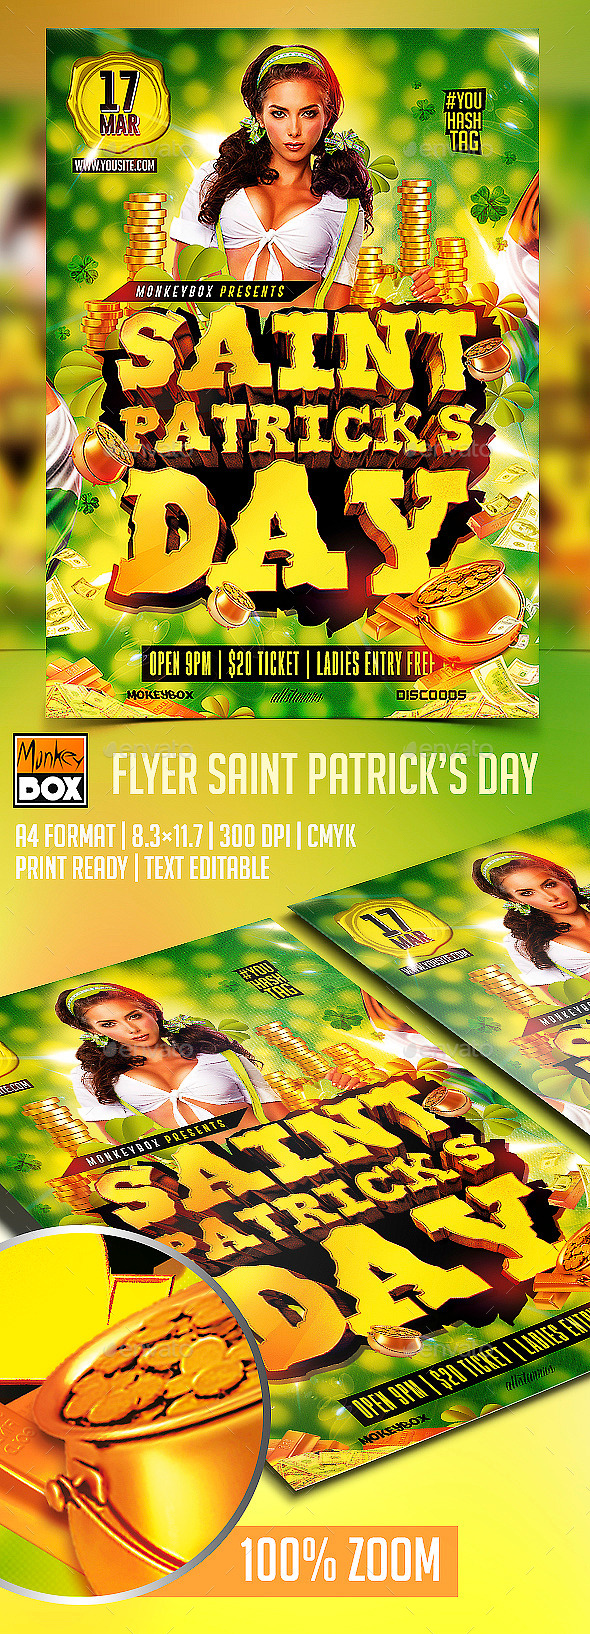 Flyer Saint Patricks Day